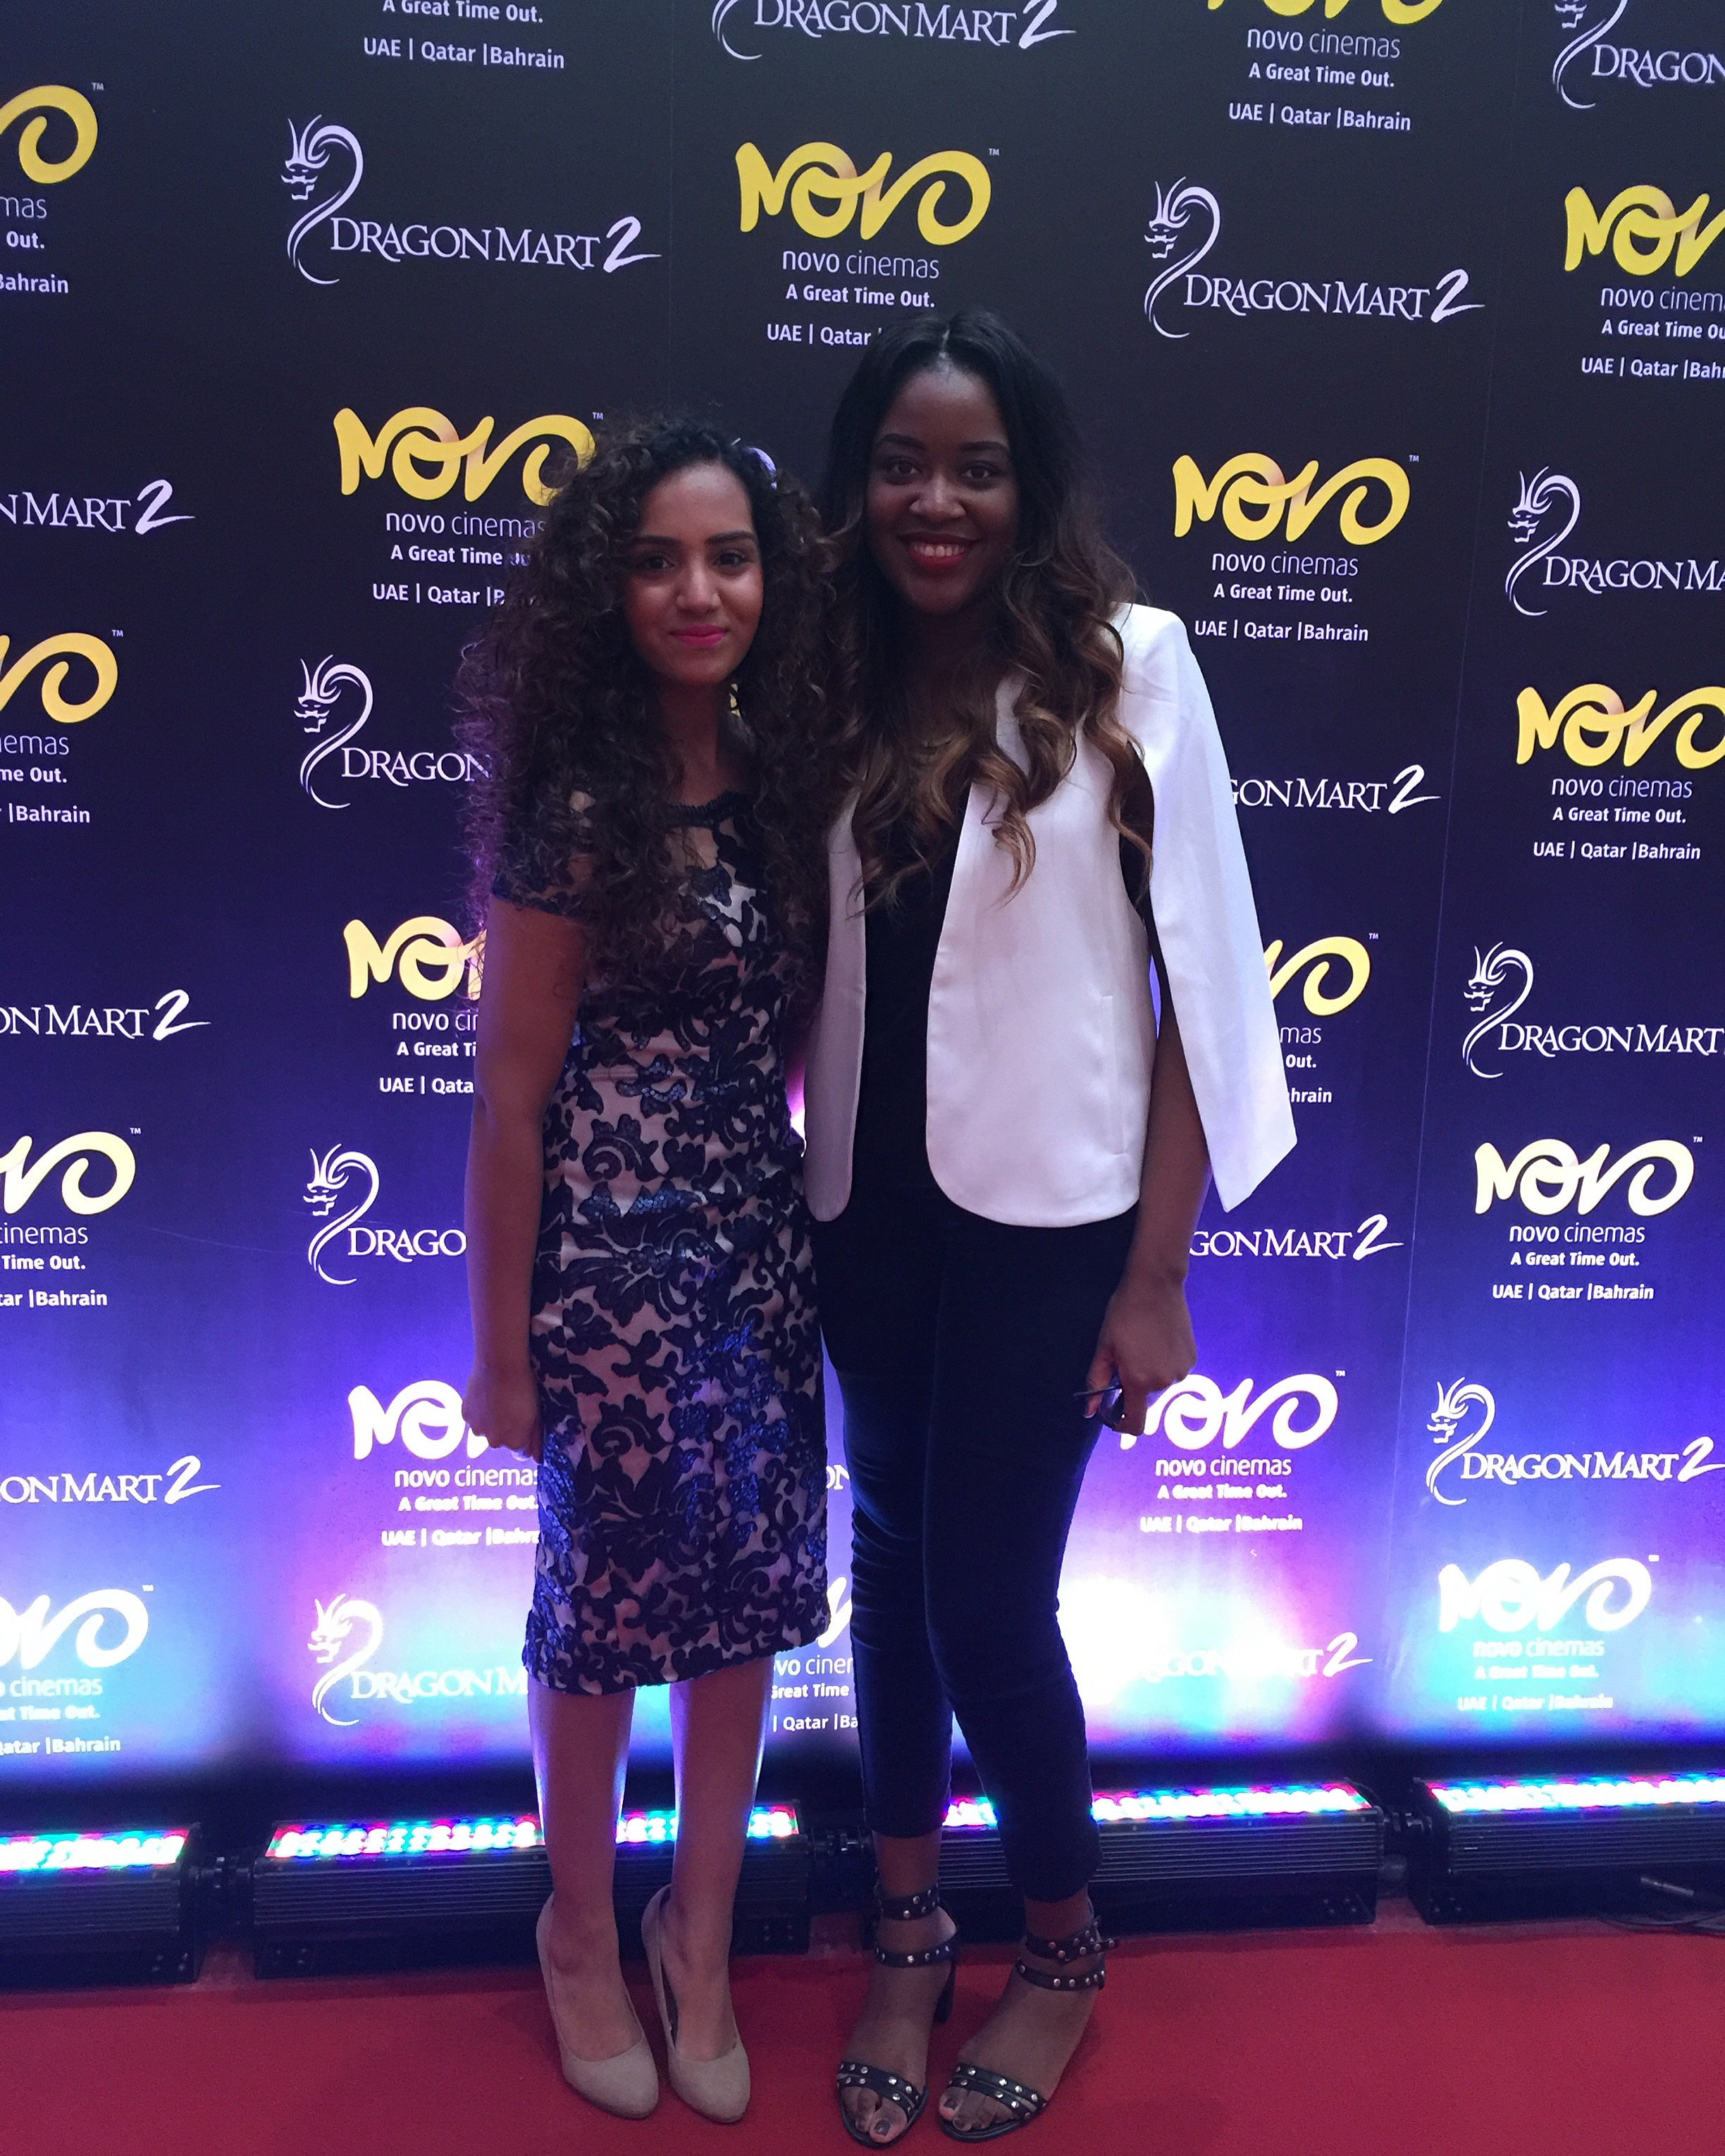 Novo Cinemas Reveals Further Expansion Plans in the Region